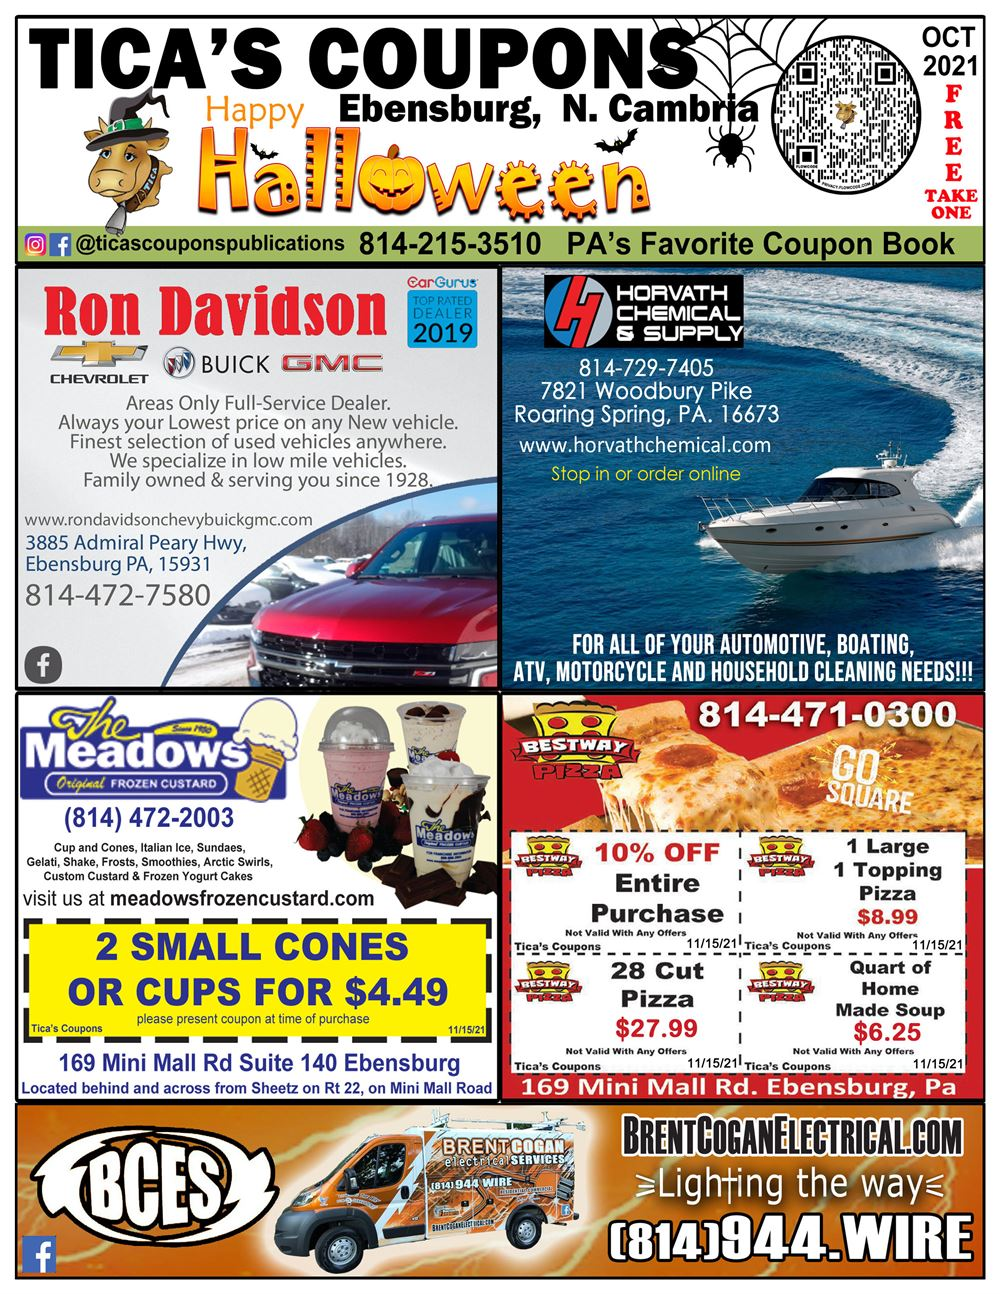 Ebensburg front cover Oct 21